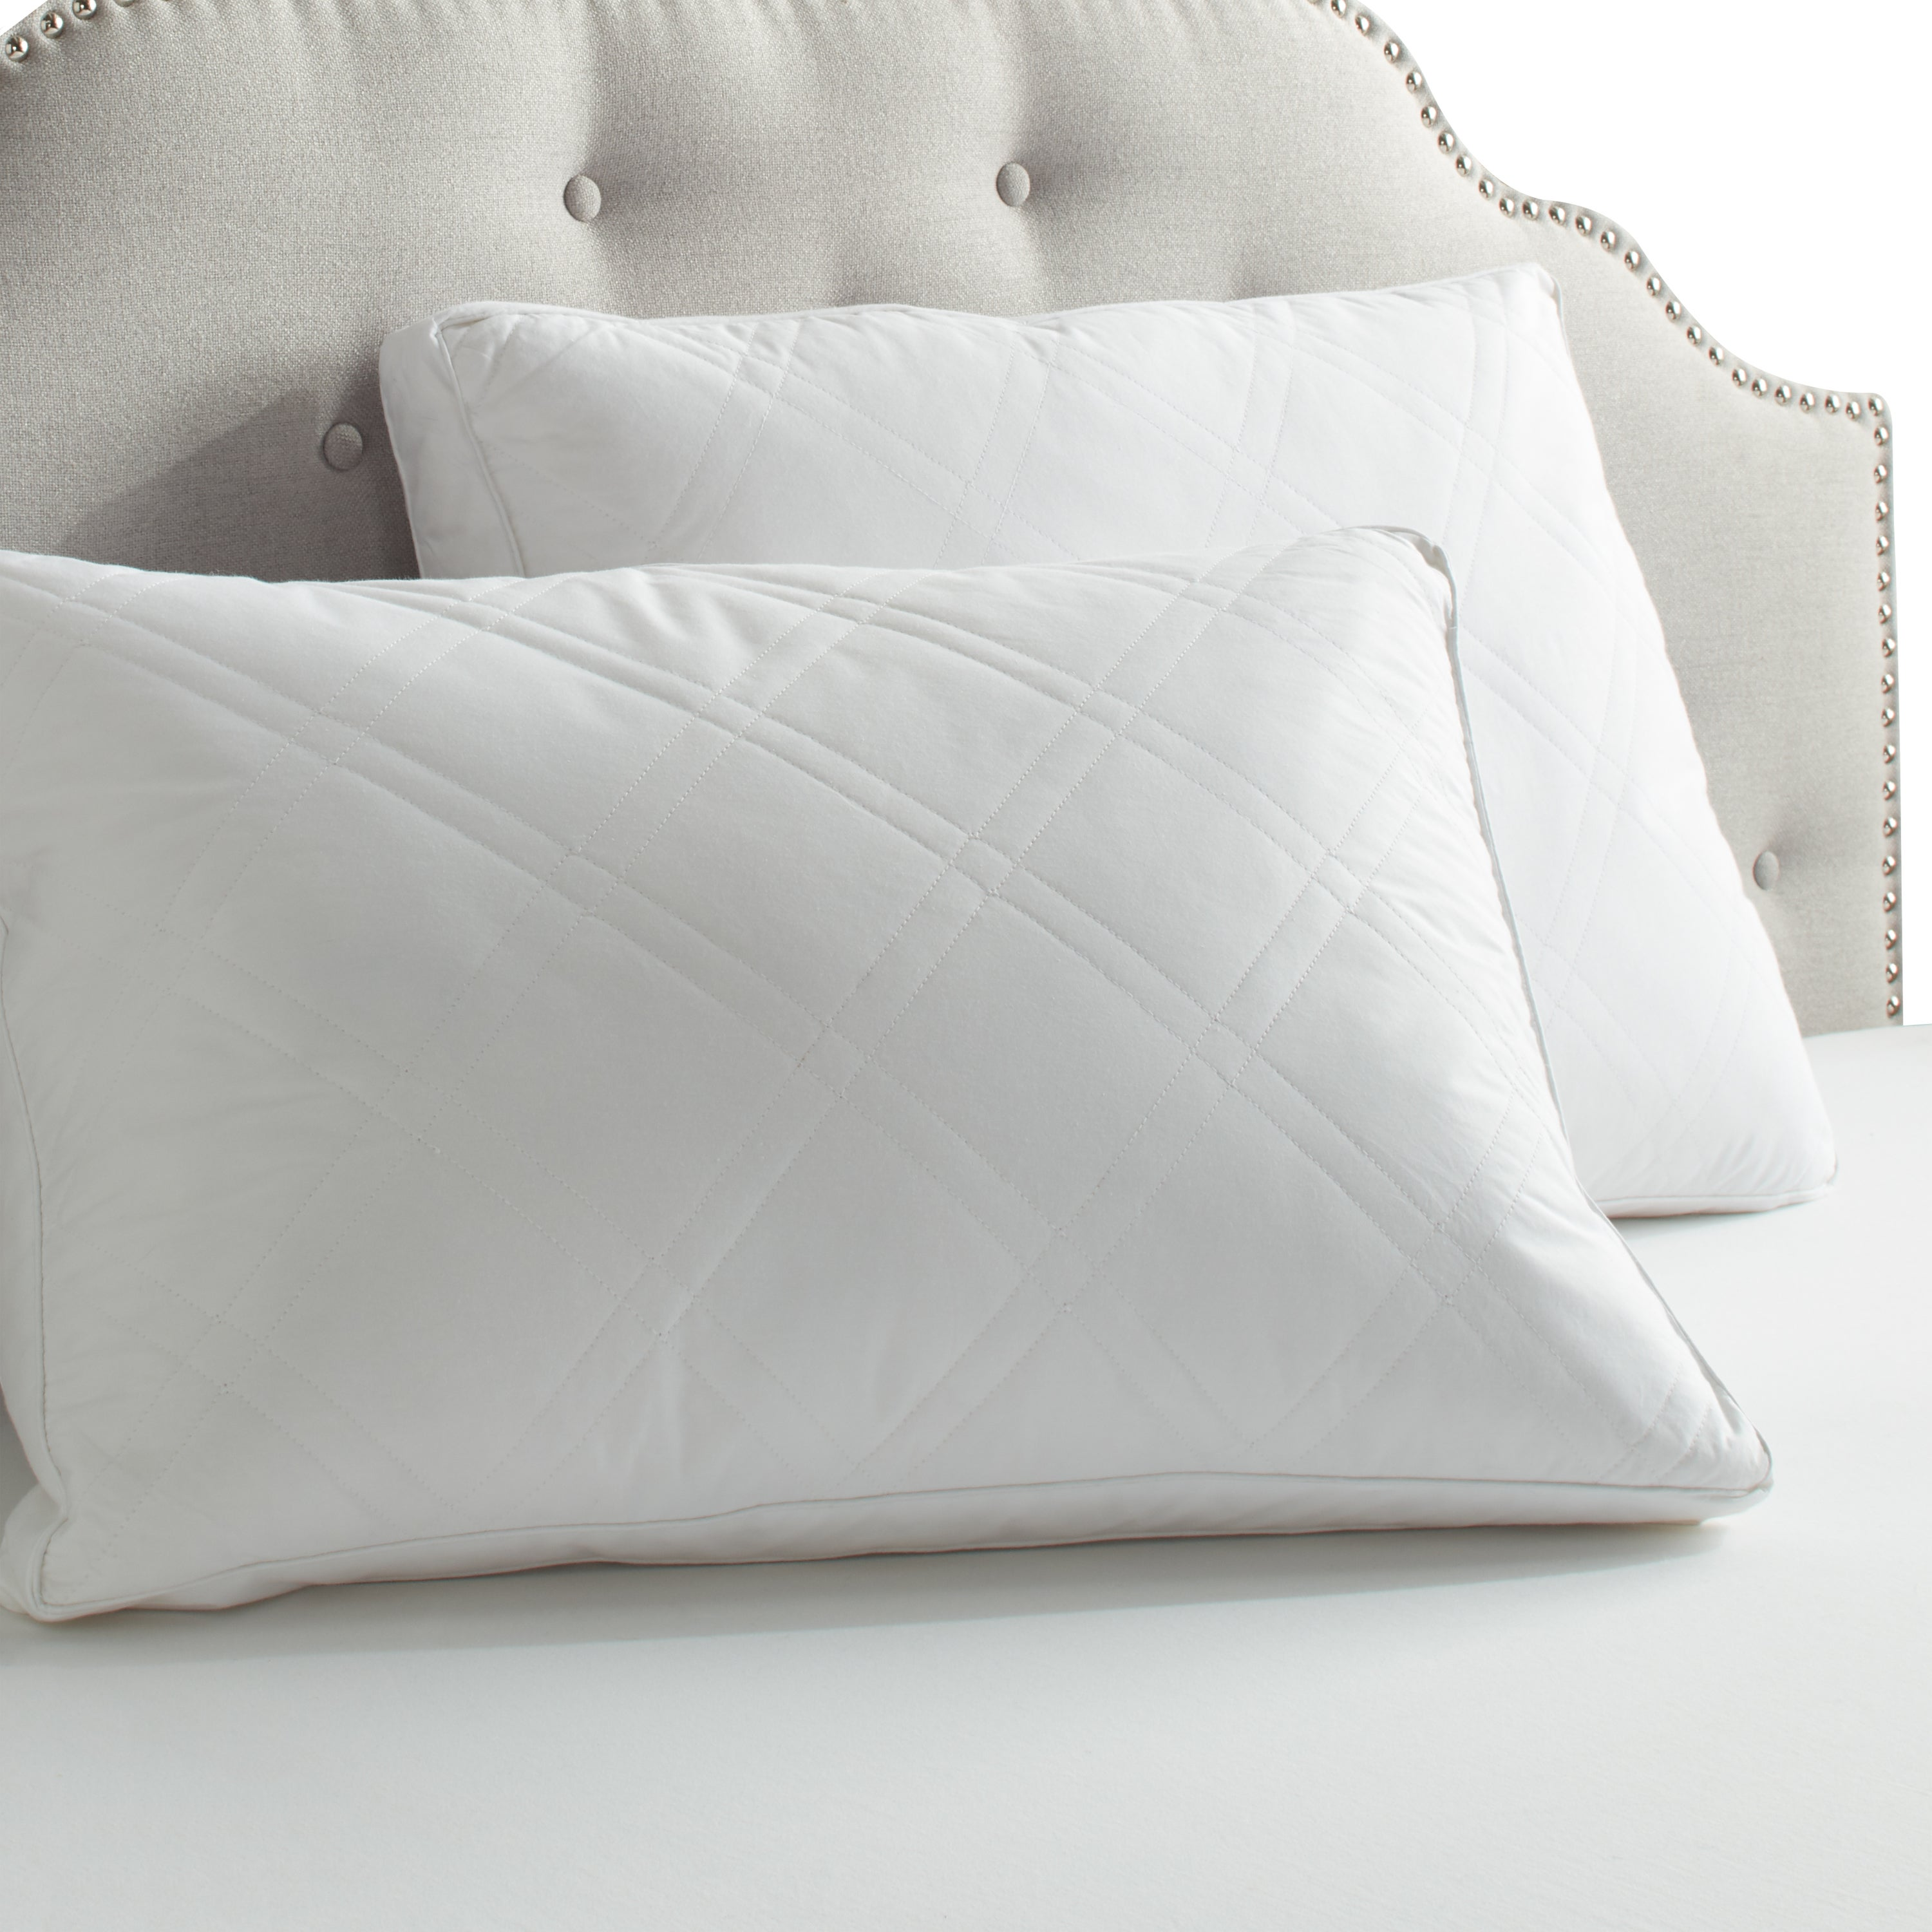 mm down std standard feather moemoe d boutique pillows products pair the green f pillow